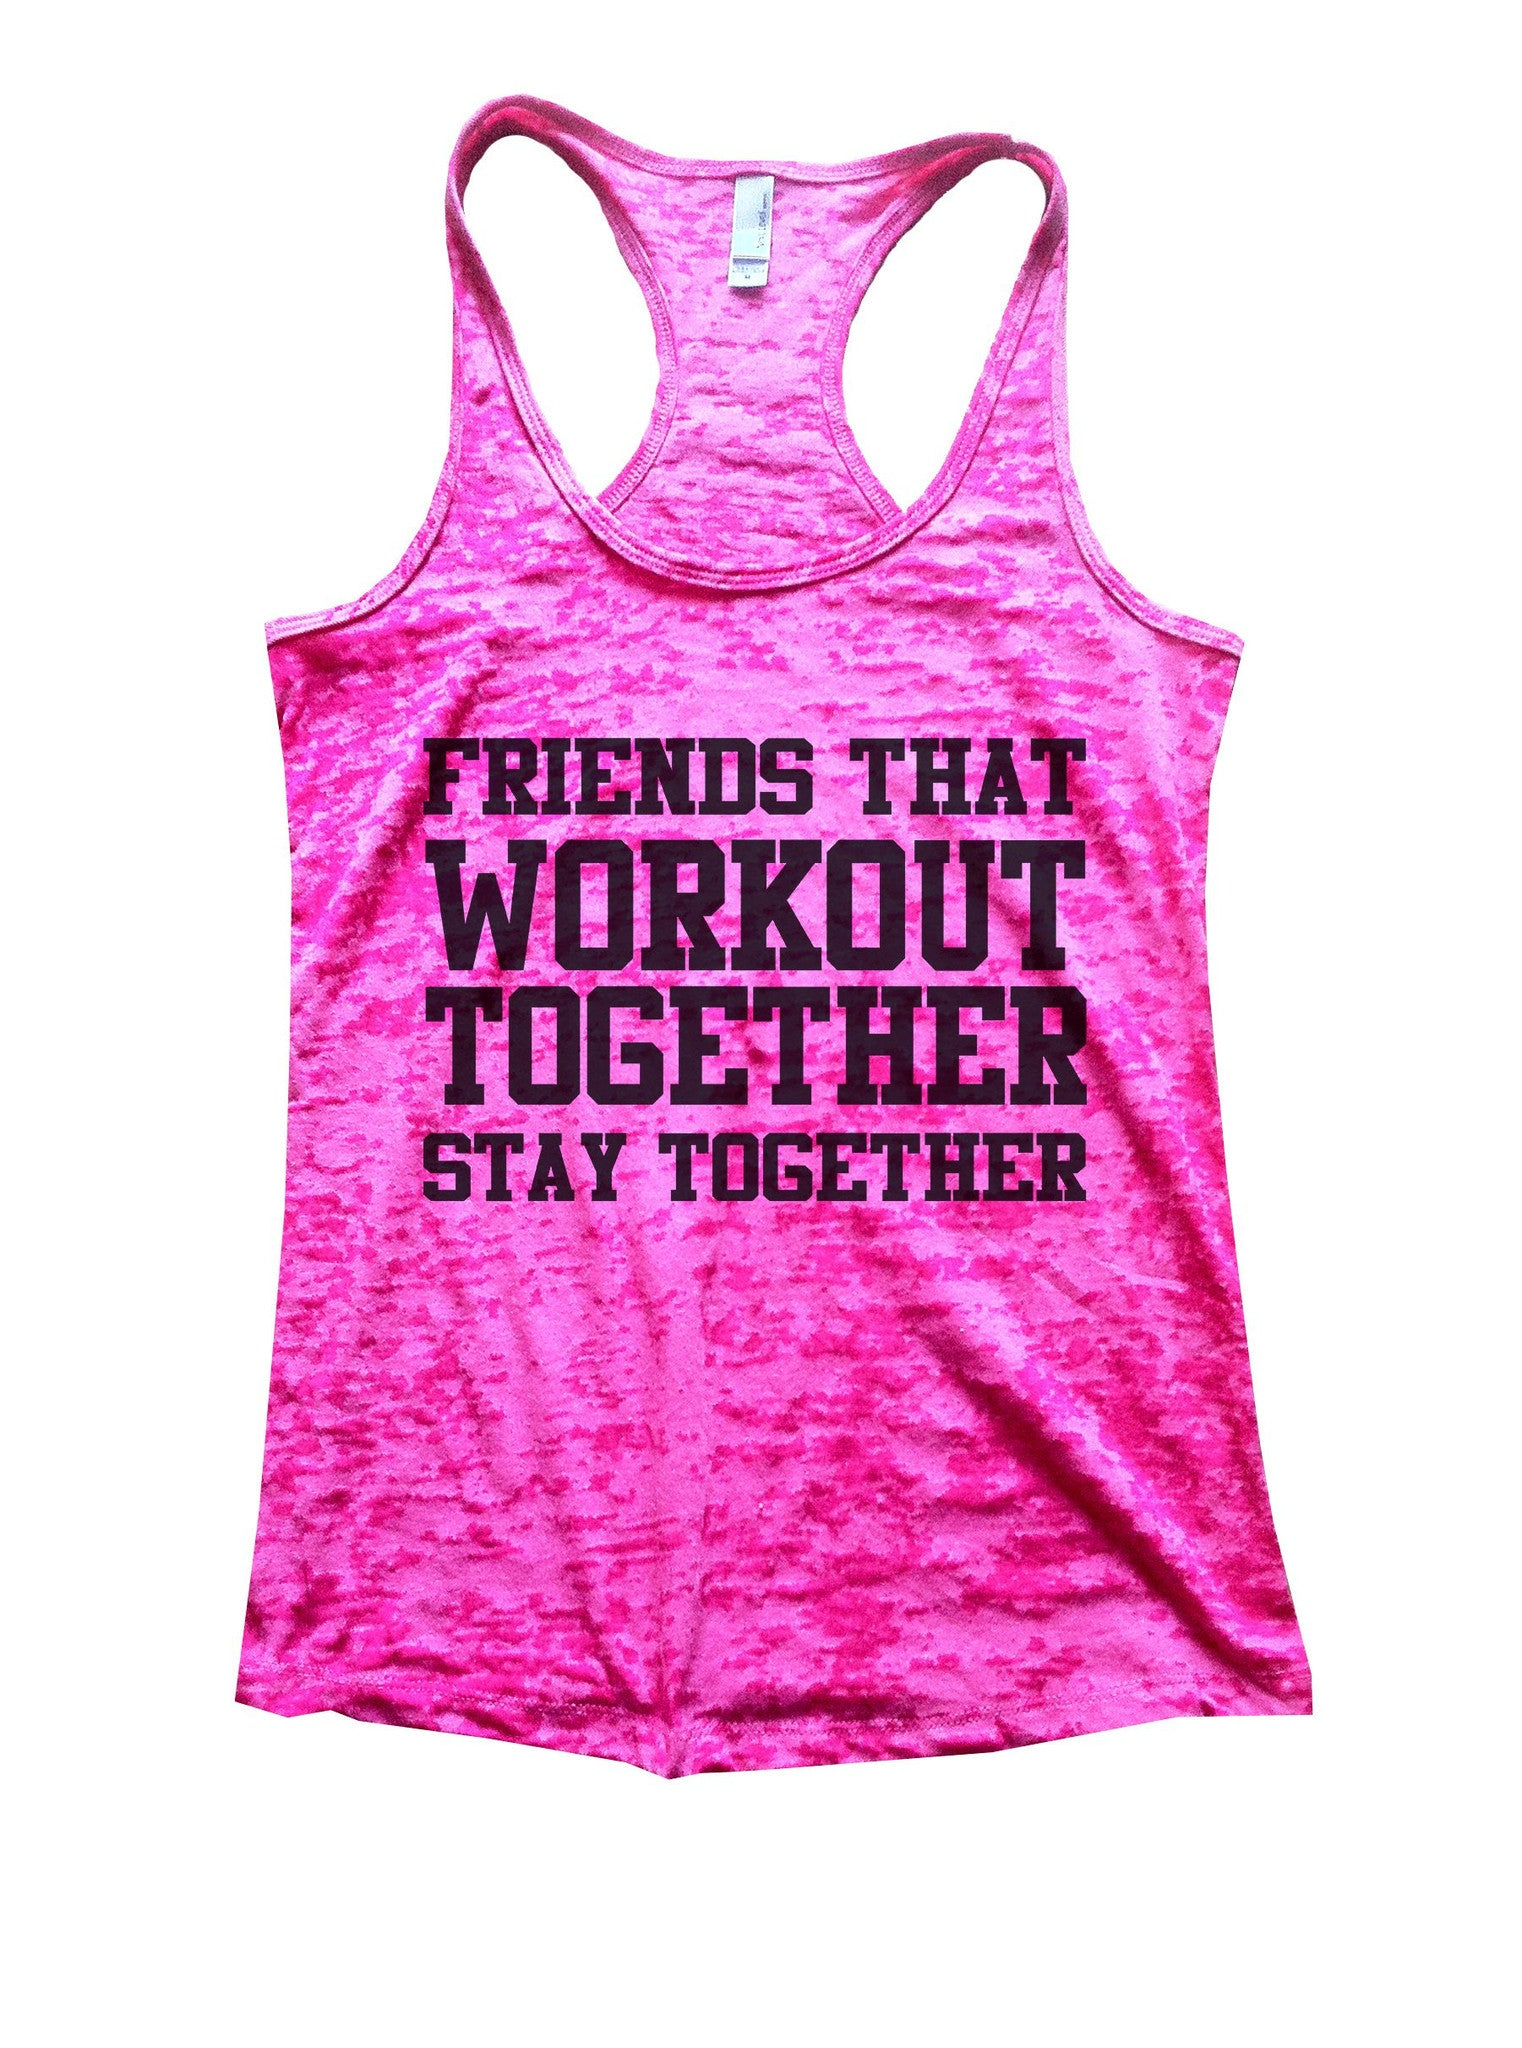 Friends That Workout Together Stay Together Burnout Tank Top By BurnoutTankTops.com - 847 - Funny Shirts Tank Tops Burnouts and Triblends  - 5